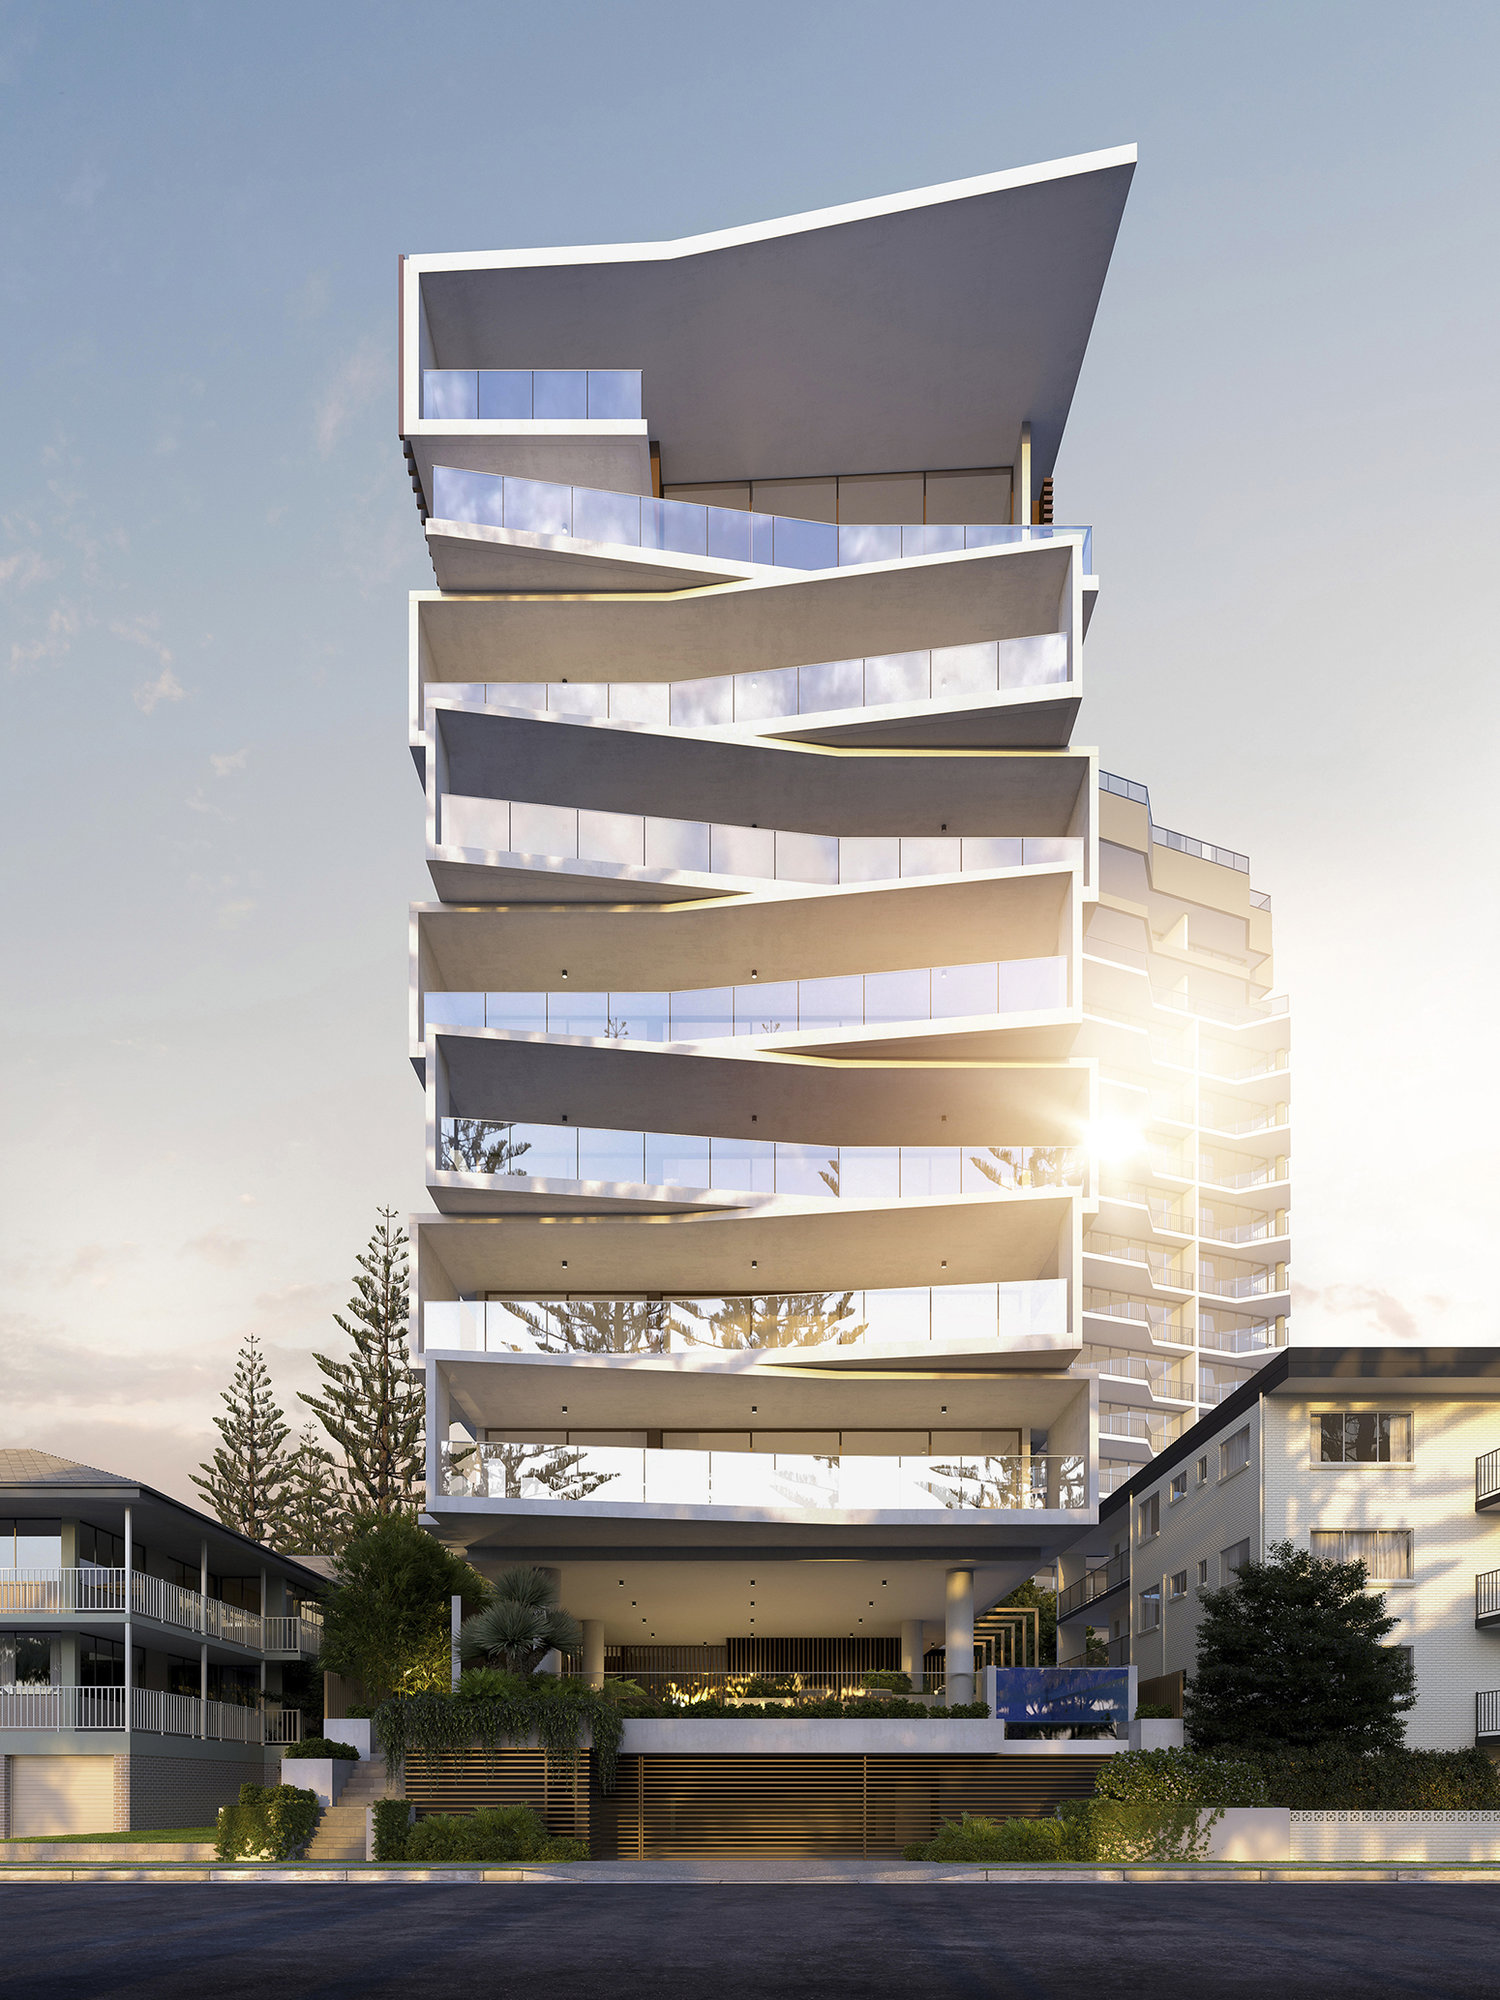 19 BROADBEACH / BROADBEACH - UNDER CONSTRUCTION